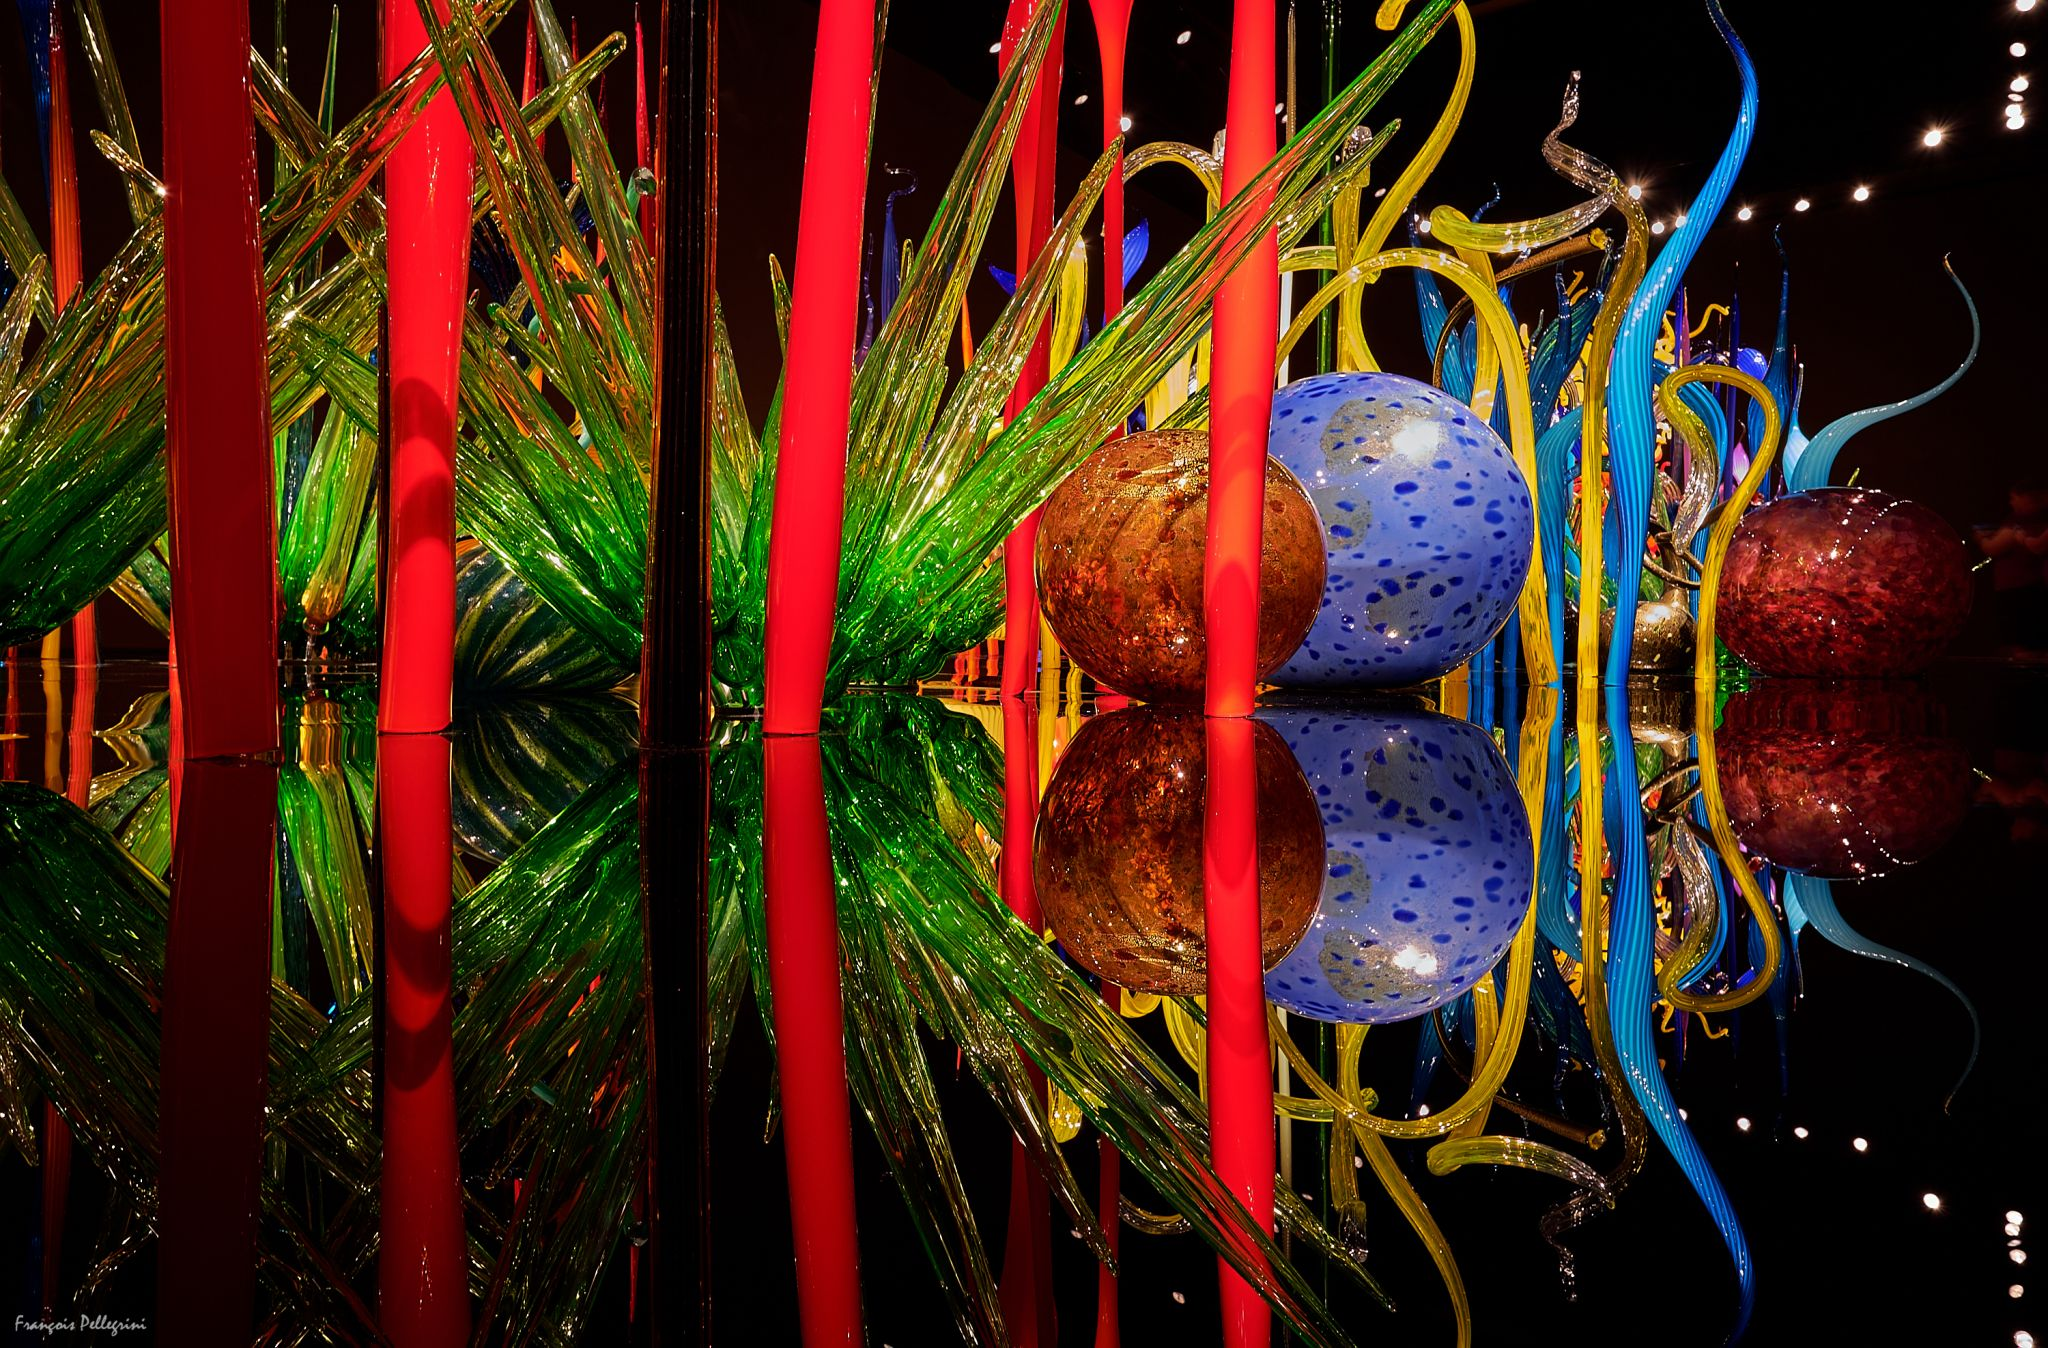 Chihuly Garden and Glass, Seattle, USA